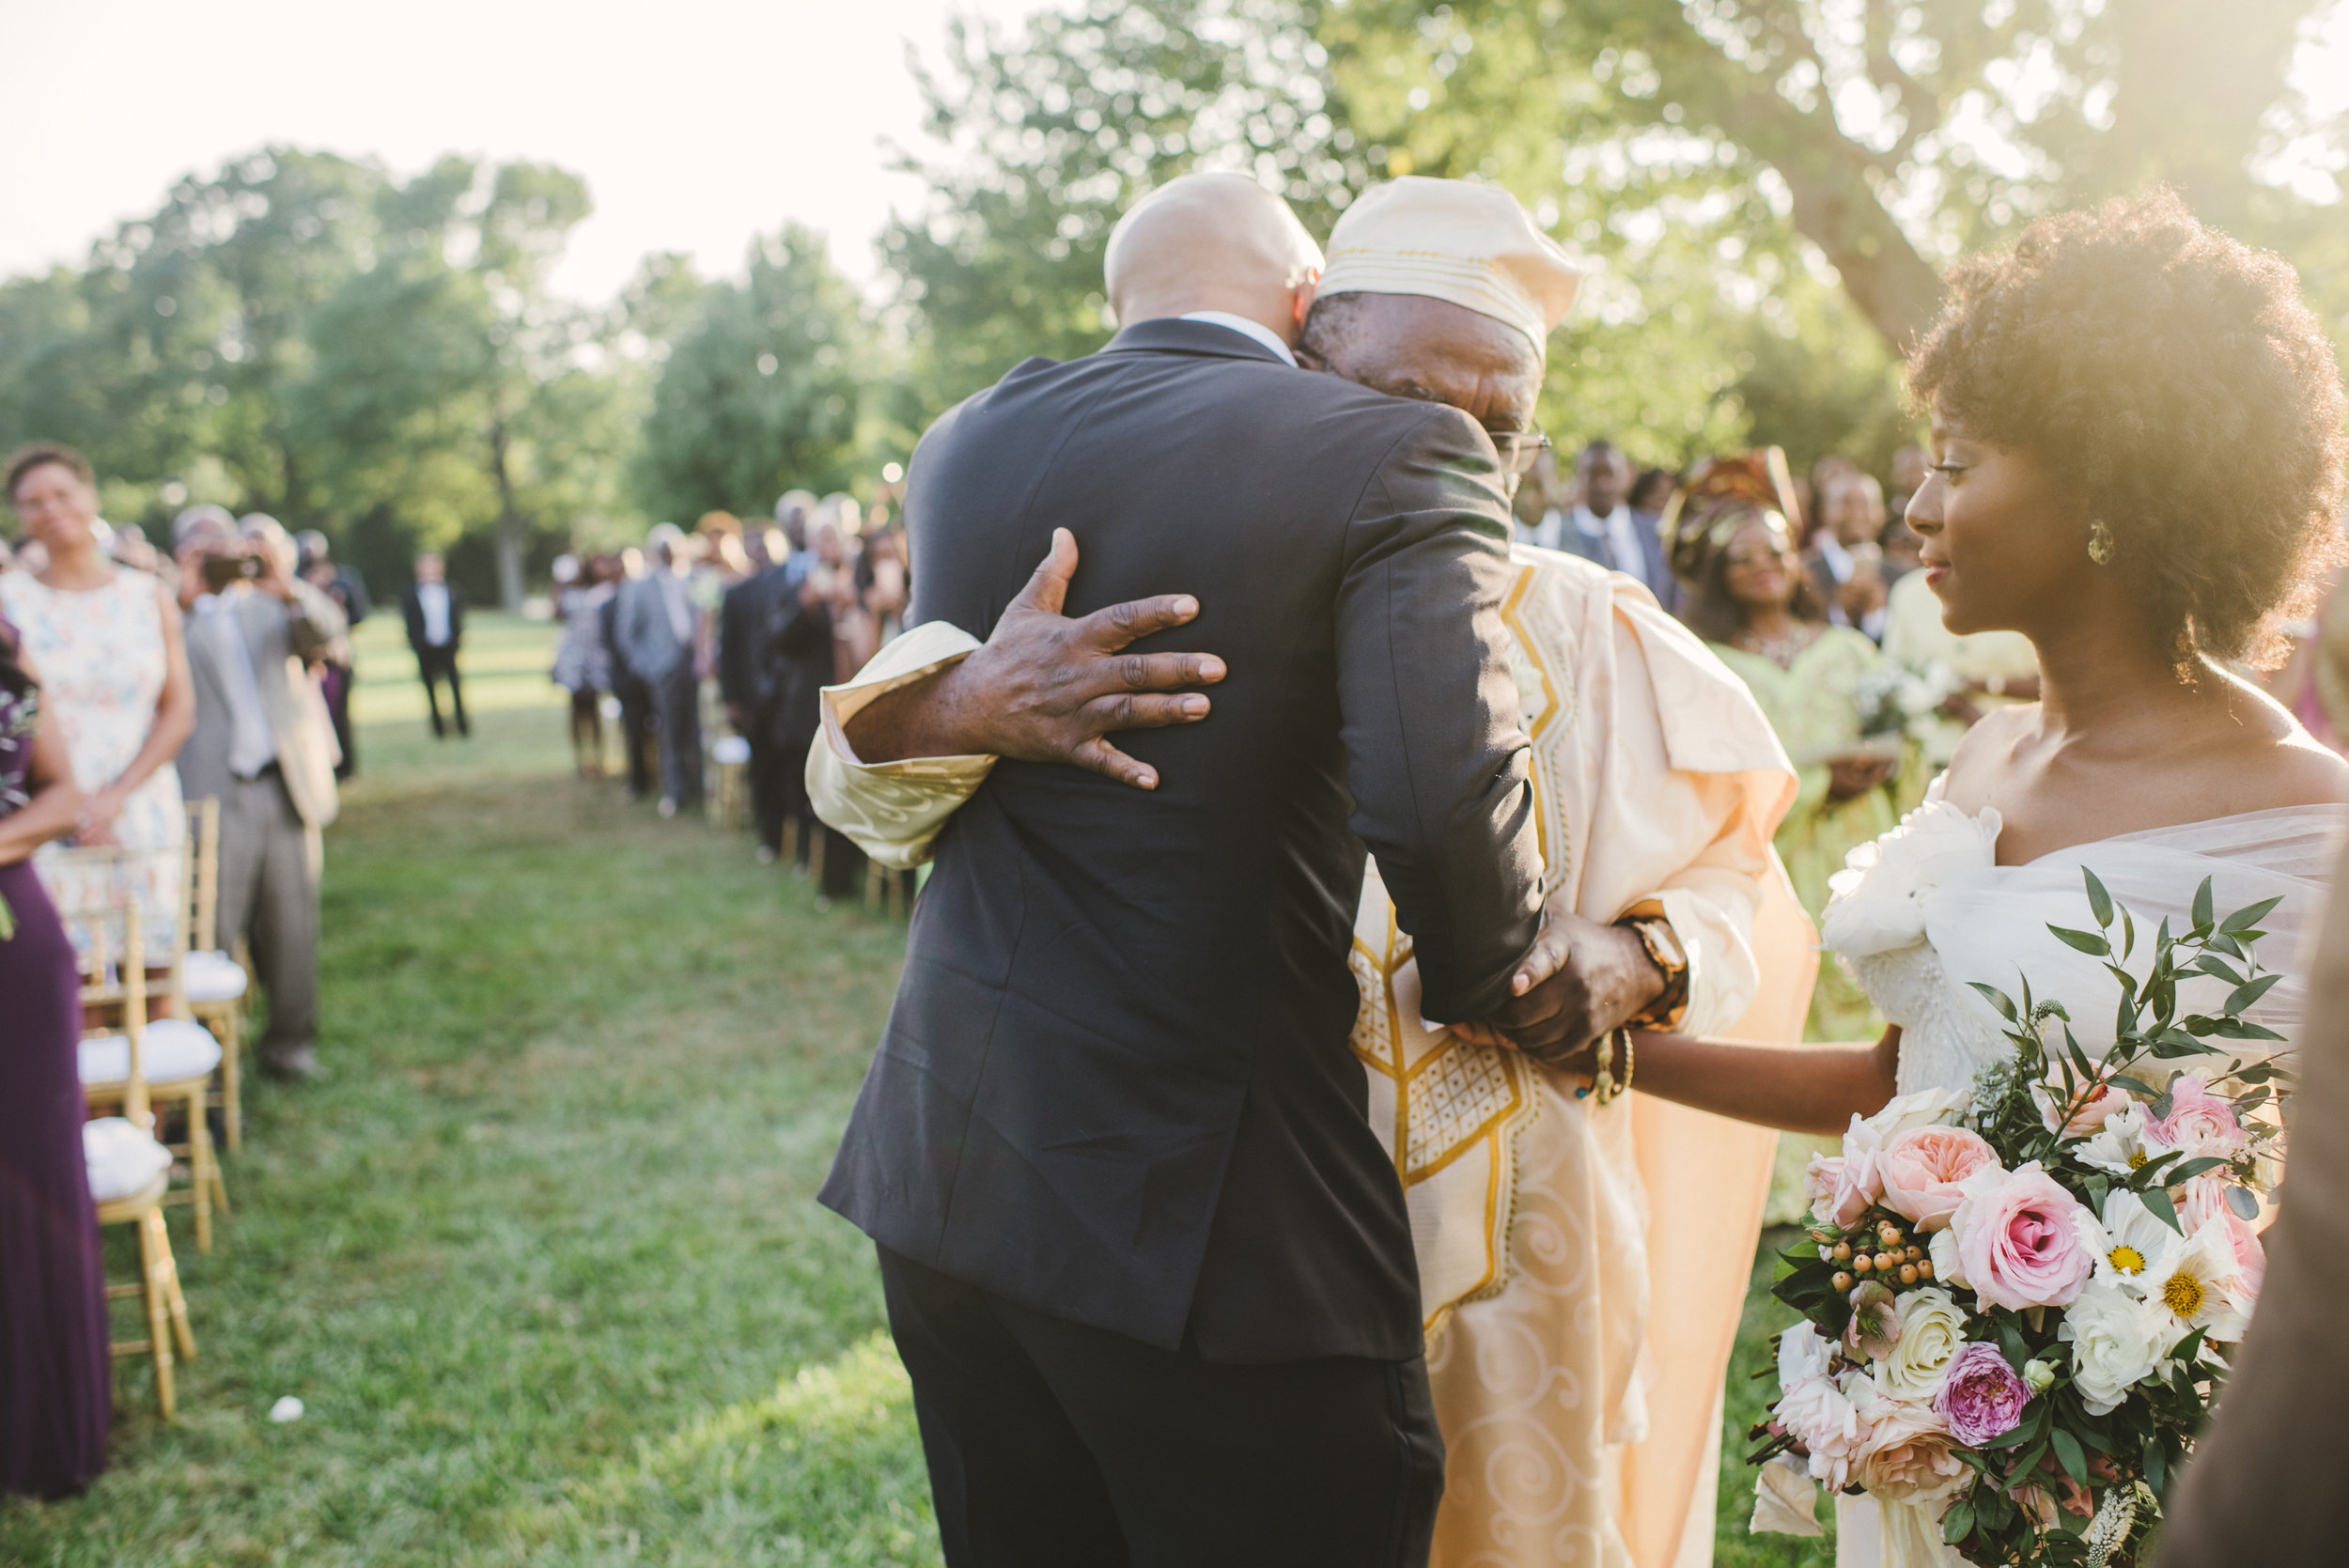 GLENVIEW MANSION WEDDING - INTIMATE WEDDING PHOTOGRAPHER - TWOTWENTY by CHI-CHI AGBIM-229.jpg